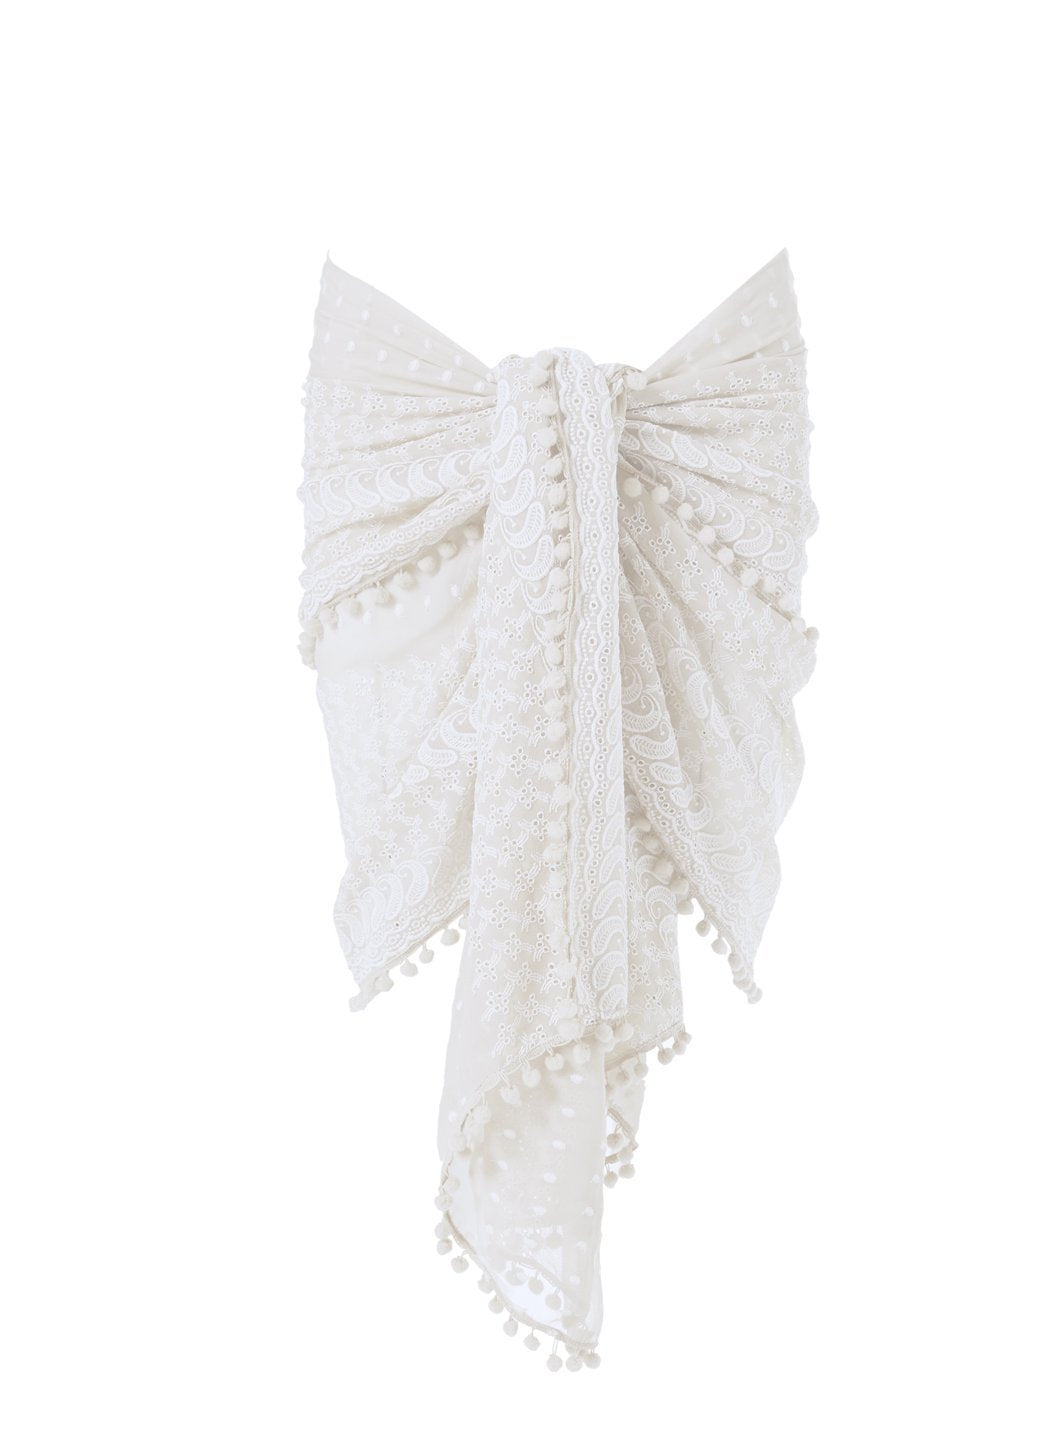 pareo embroidered white